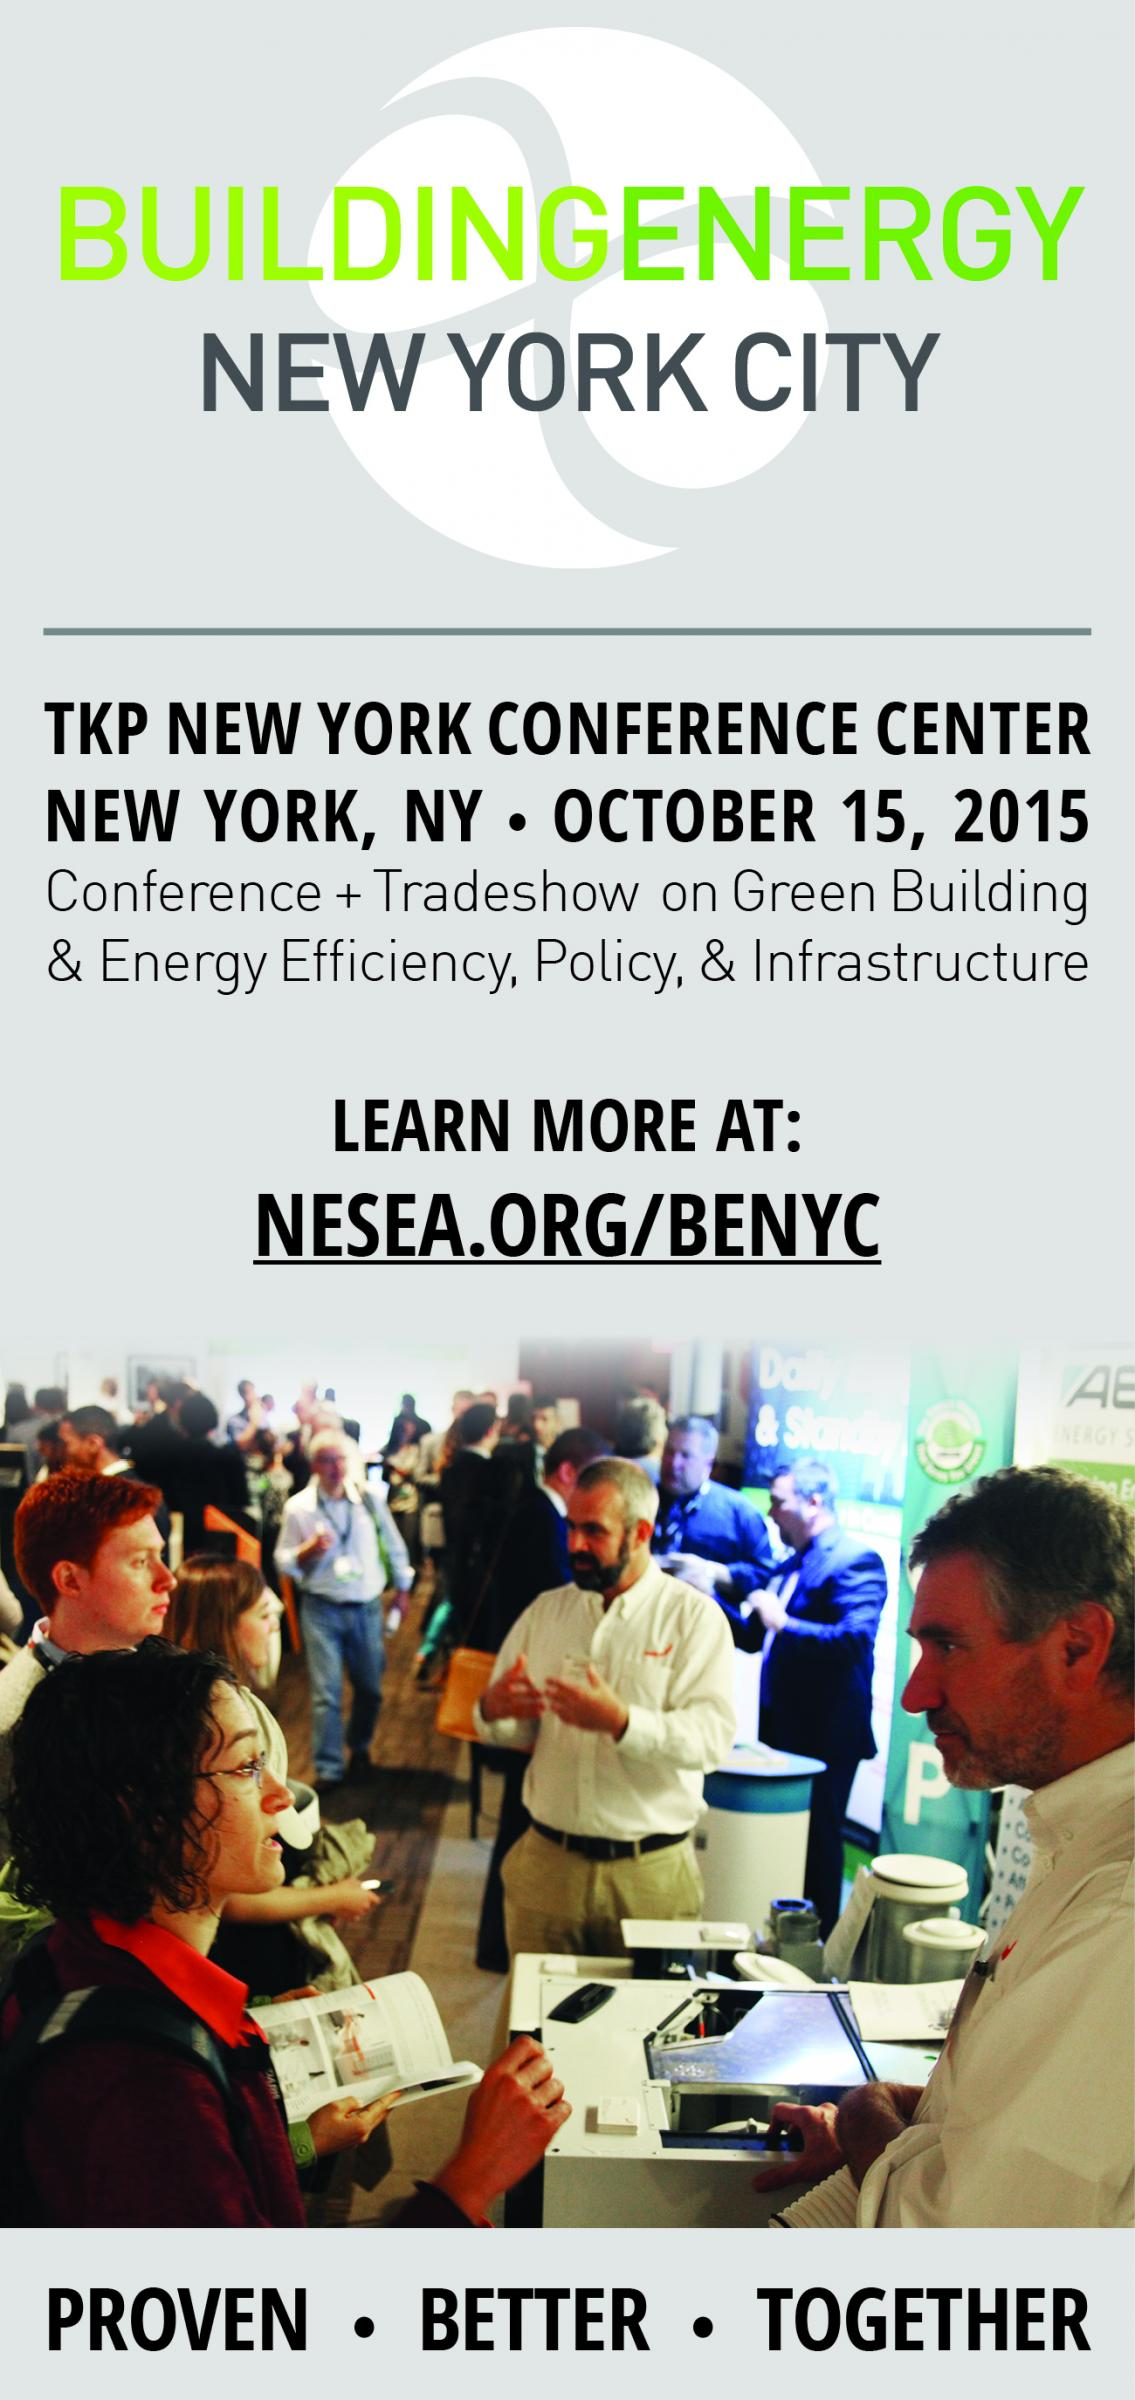 Attend BuildingEnergy NYC 15 Oct. 15th in New York City